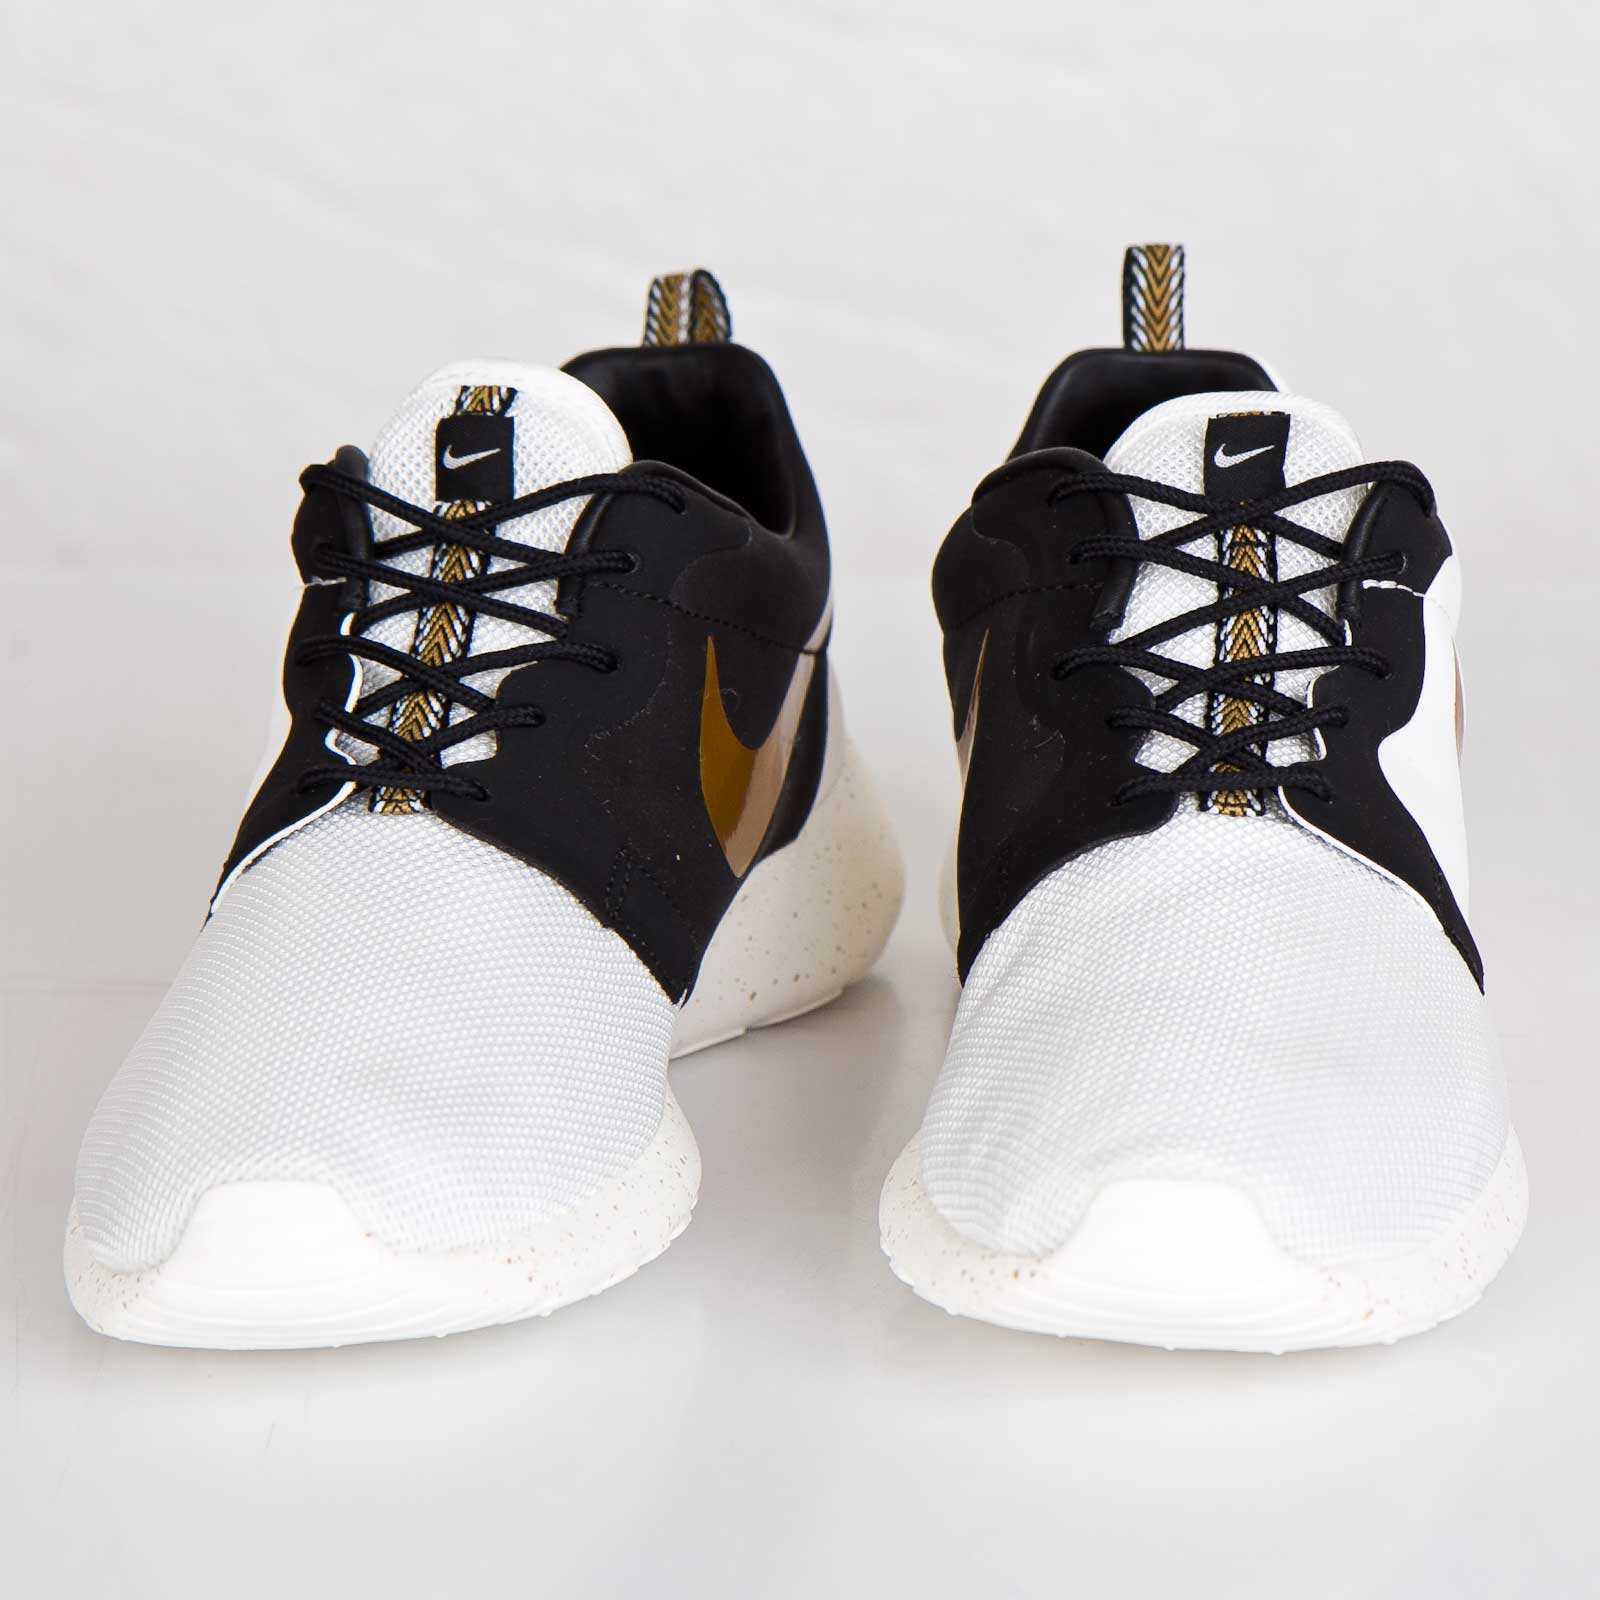 a822b8b0989e ... uk mens nike roshe y7bxx 4 run suede hpy prm qs gold trophy pack running  tra 61bbe a15b2  best price roshe hyperfuse metallic gold 44275 77ffc